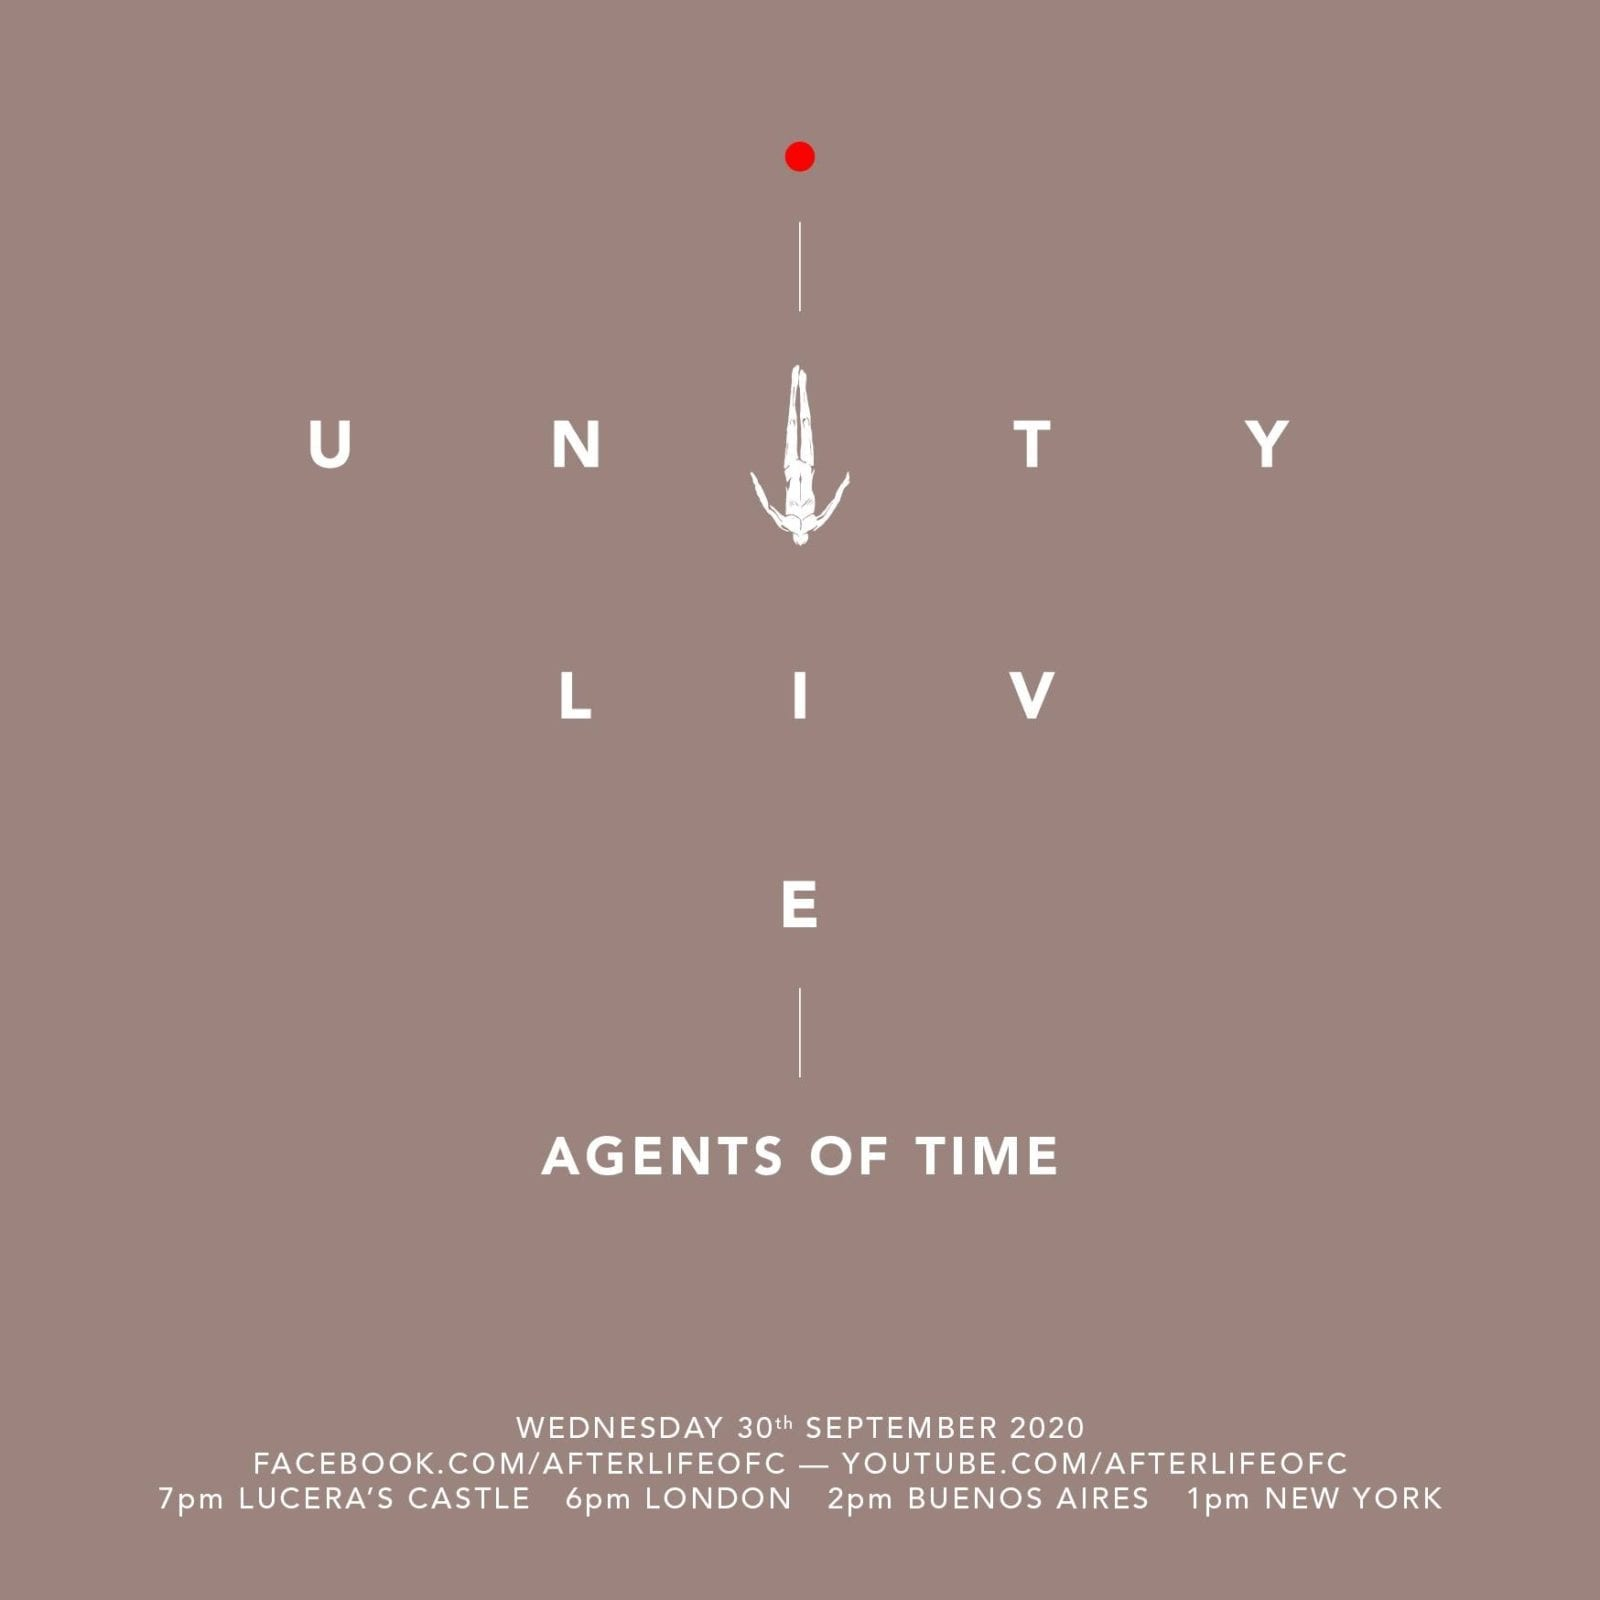 Agents of Time live